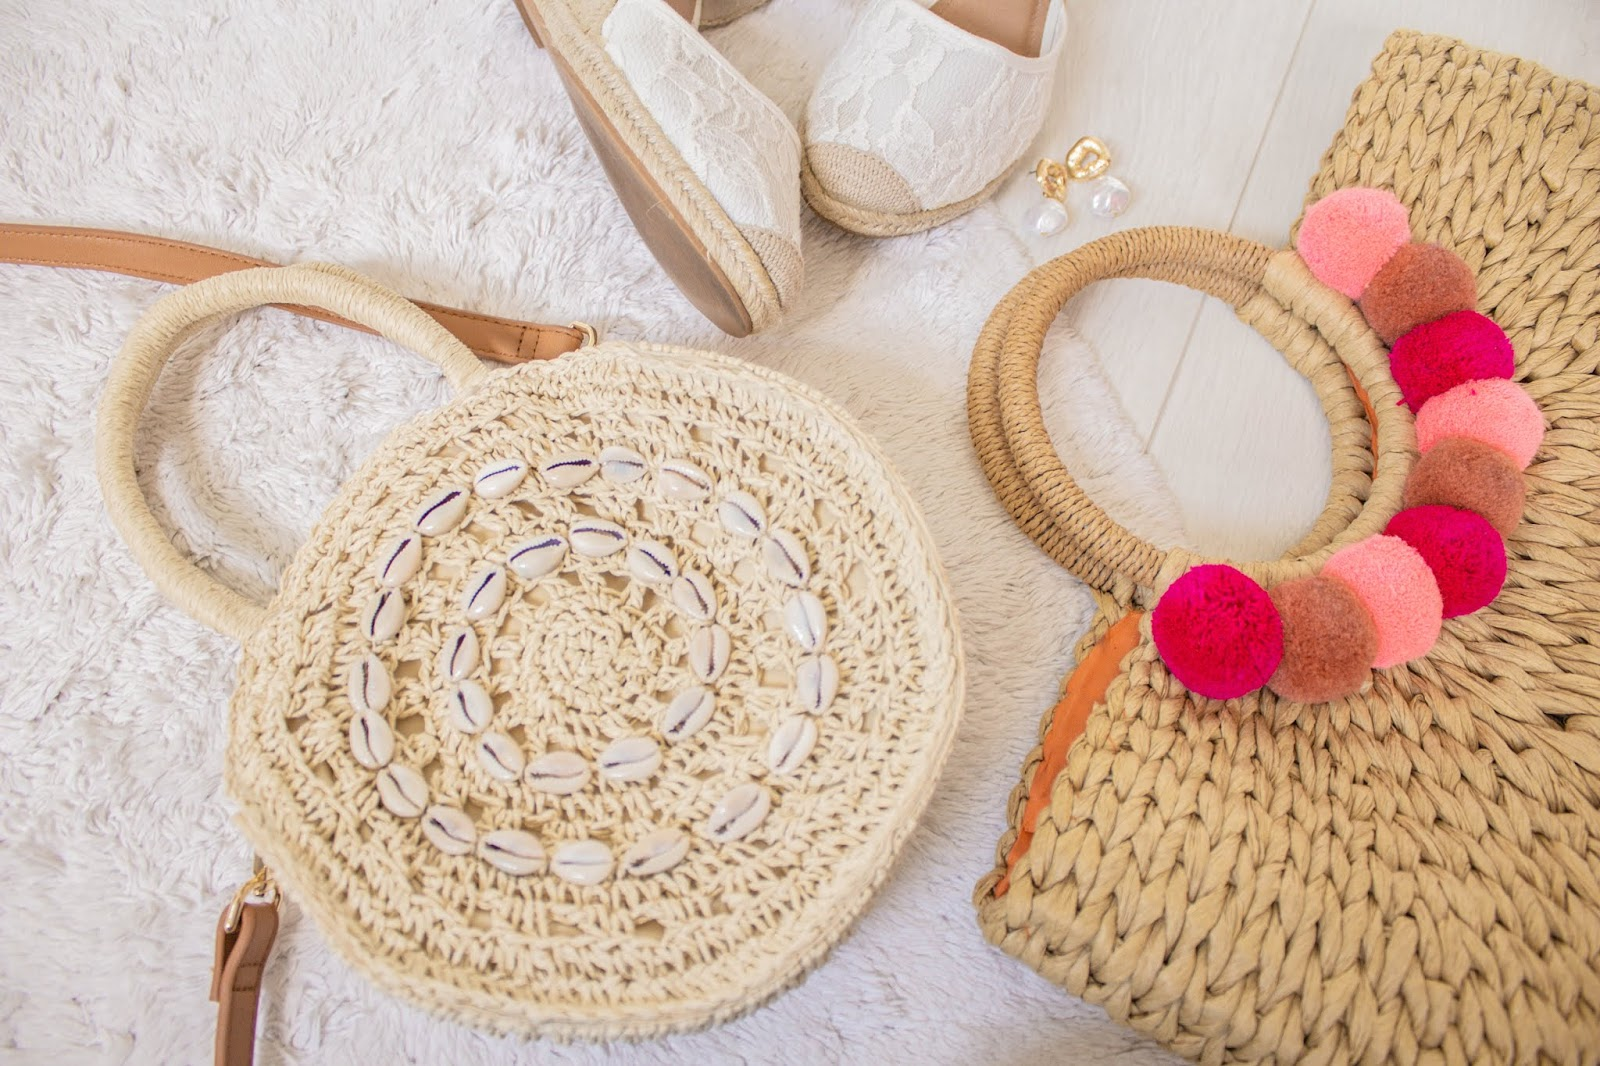 Circular straw bag with sea shell embellishment